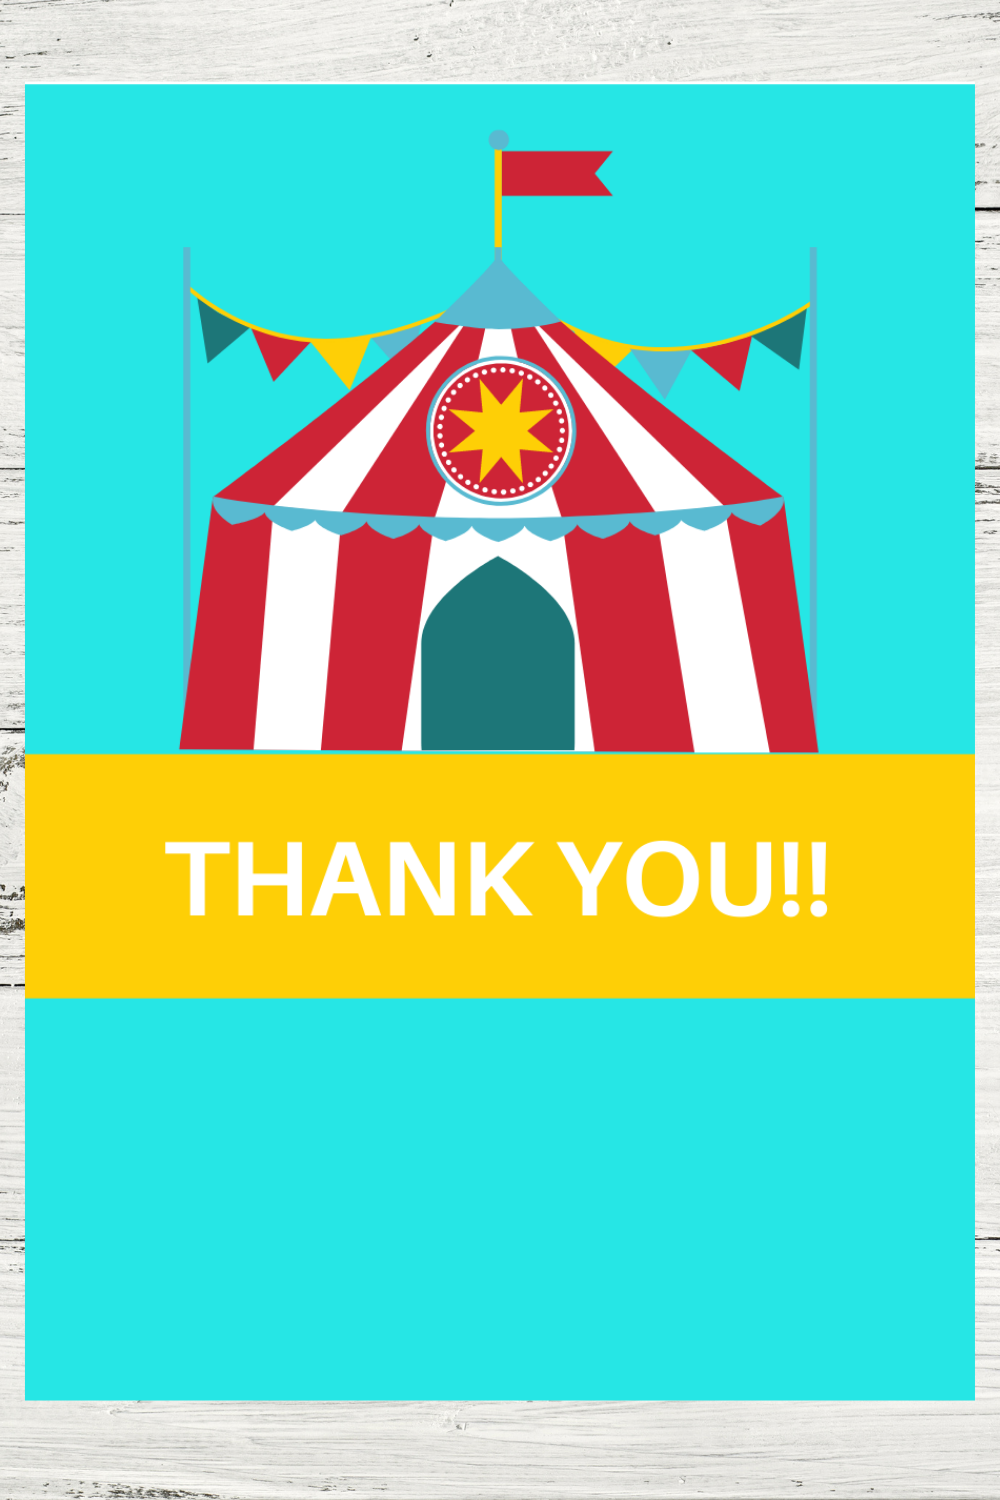 free download: circus tent thank you note for a birthday party